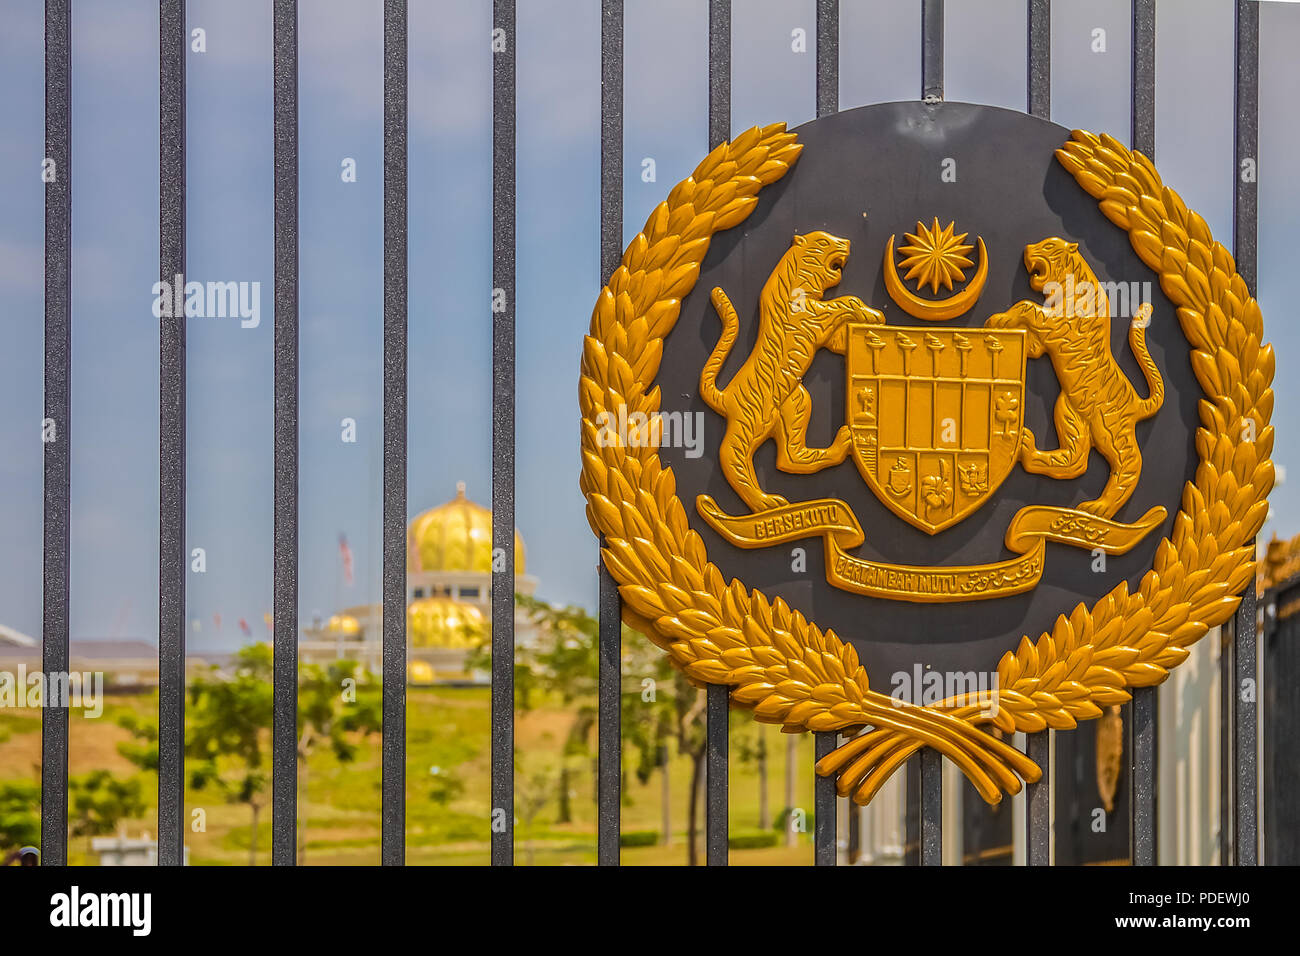 Malaysia, Kuala Lumpur - August 16, 2013:  Royal seal on the gate of the new Istana Negara, which is the royal residence of the Yang di-Pertuan Agong  - Stock Image